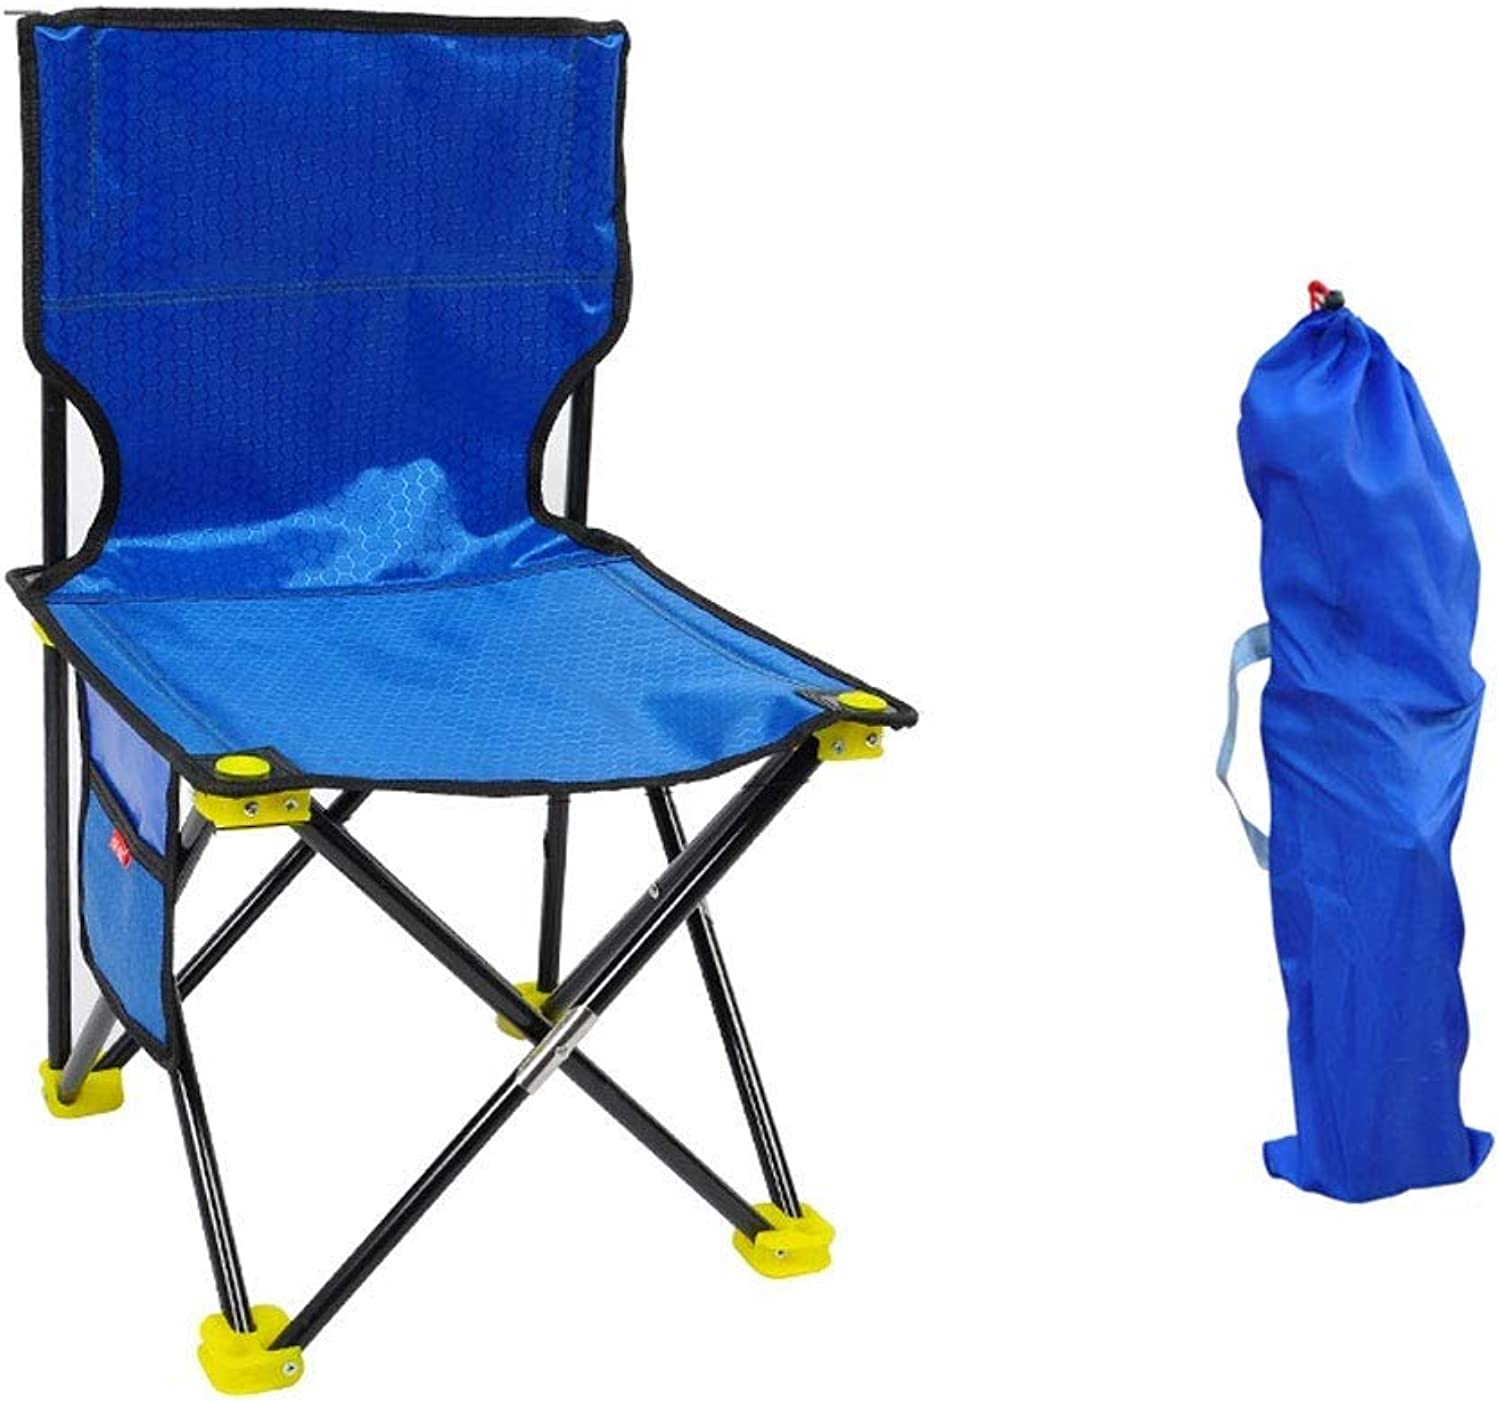 CGH Folding Camp ― Lightweight & Durable Outdoor Seat ― Perfect for